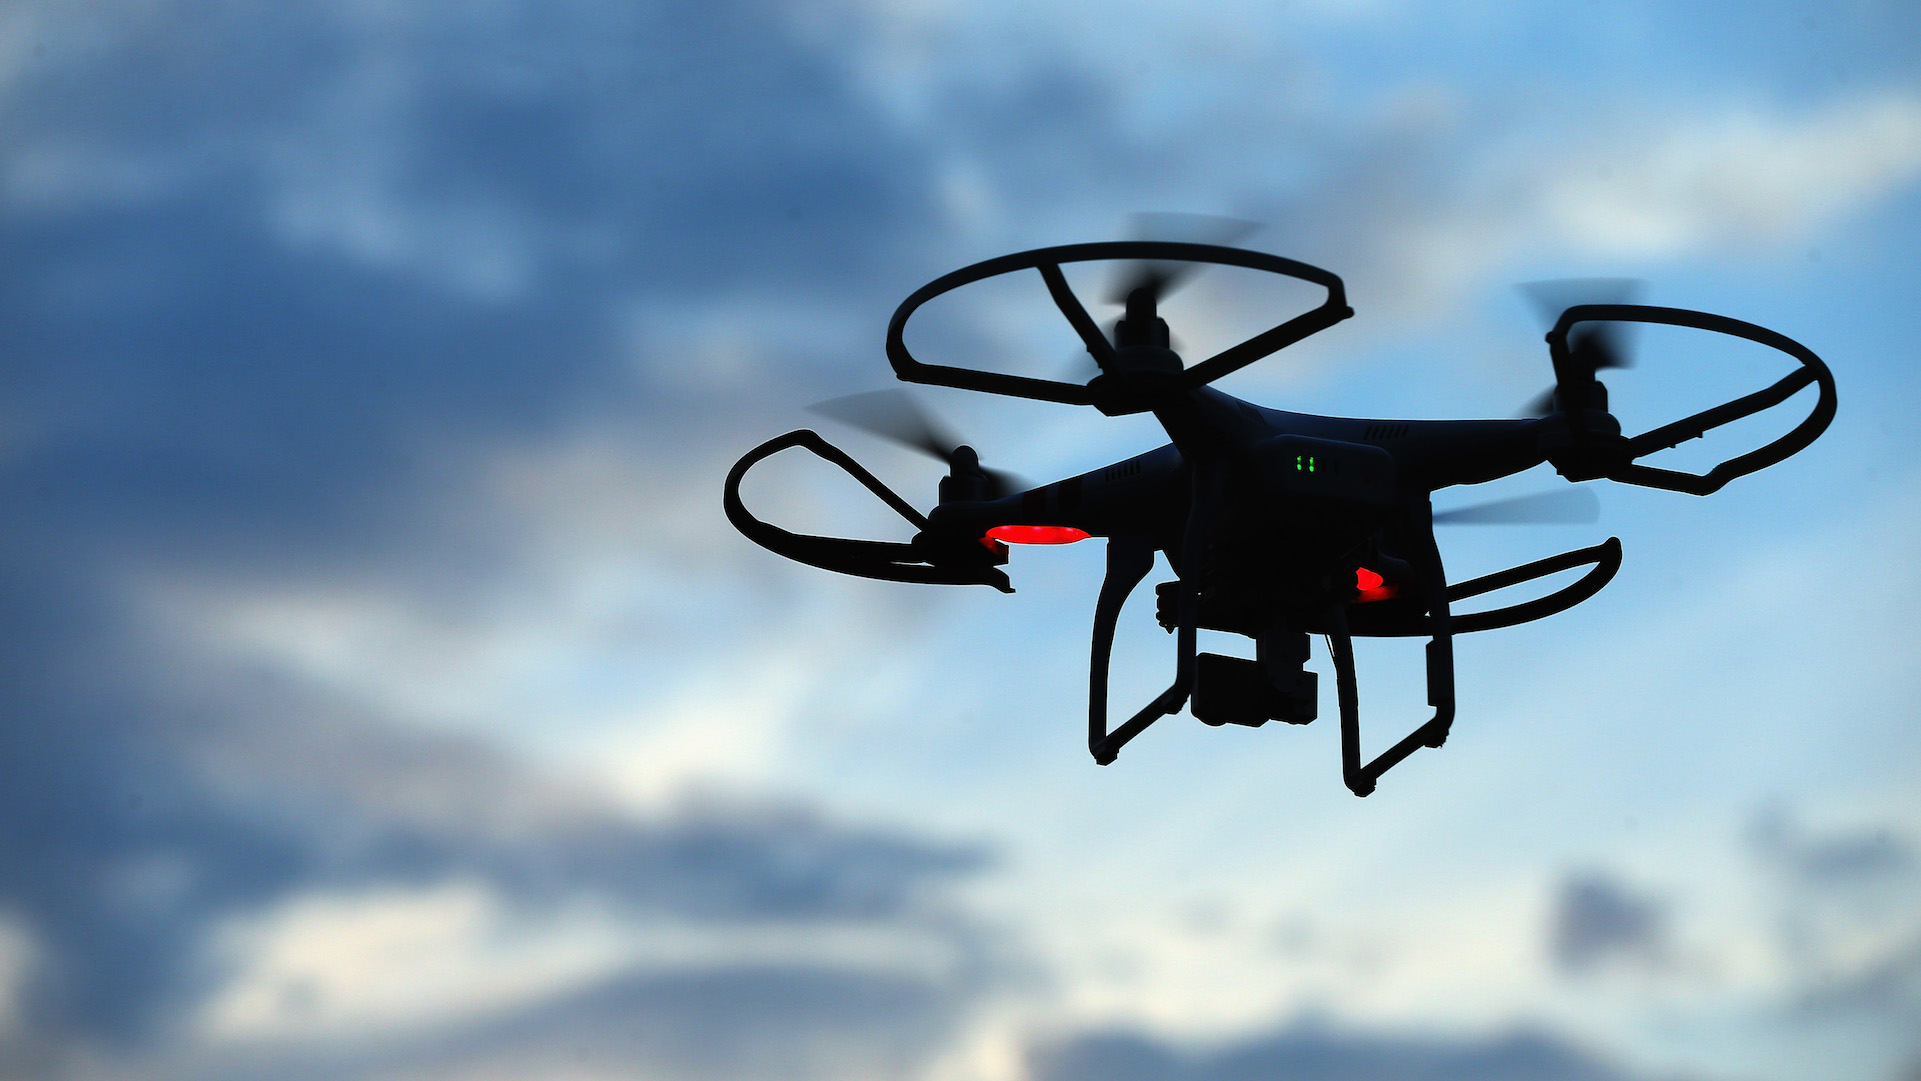 Brooklyn Man Uses Drone to Ask Woman on First Date While Social Distancing